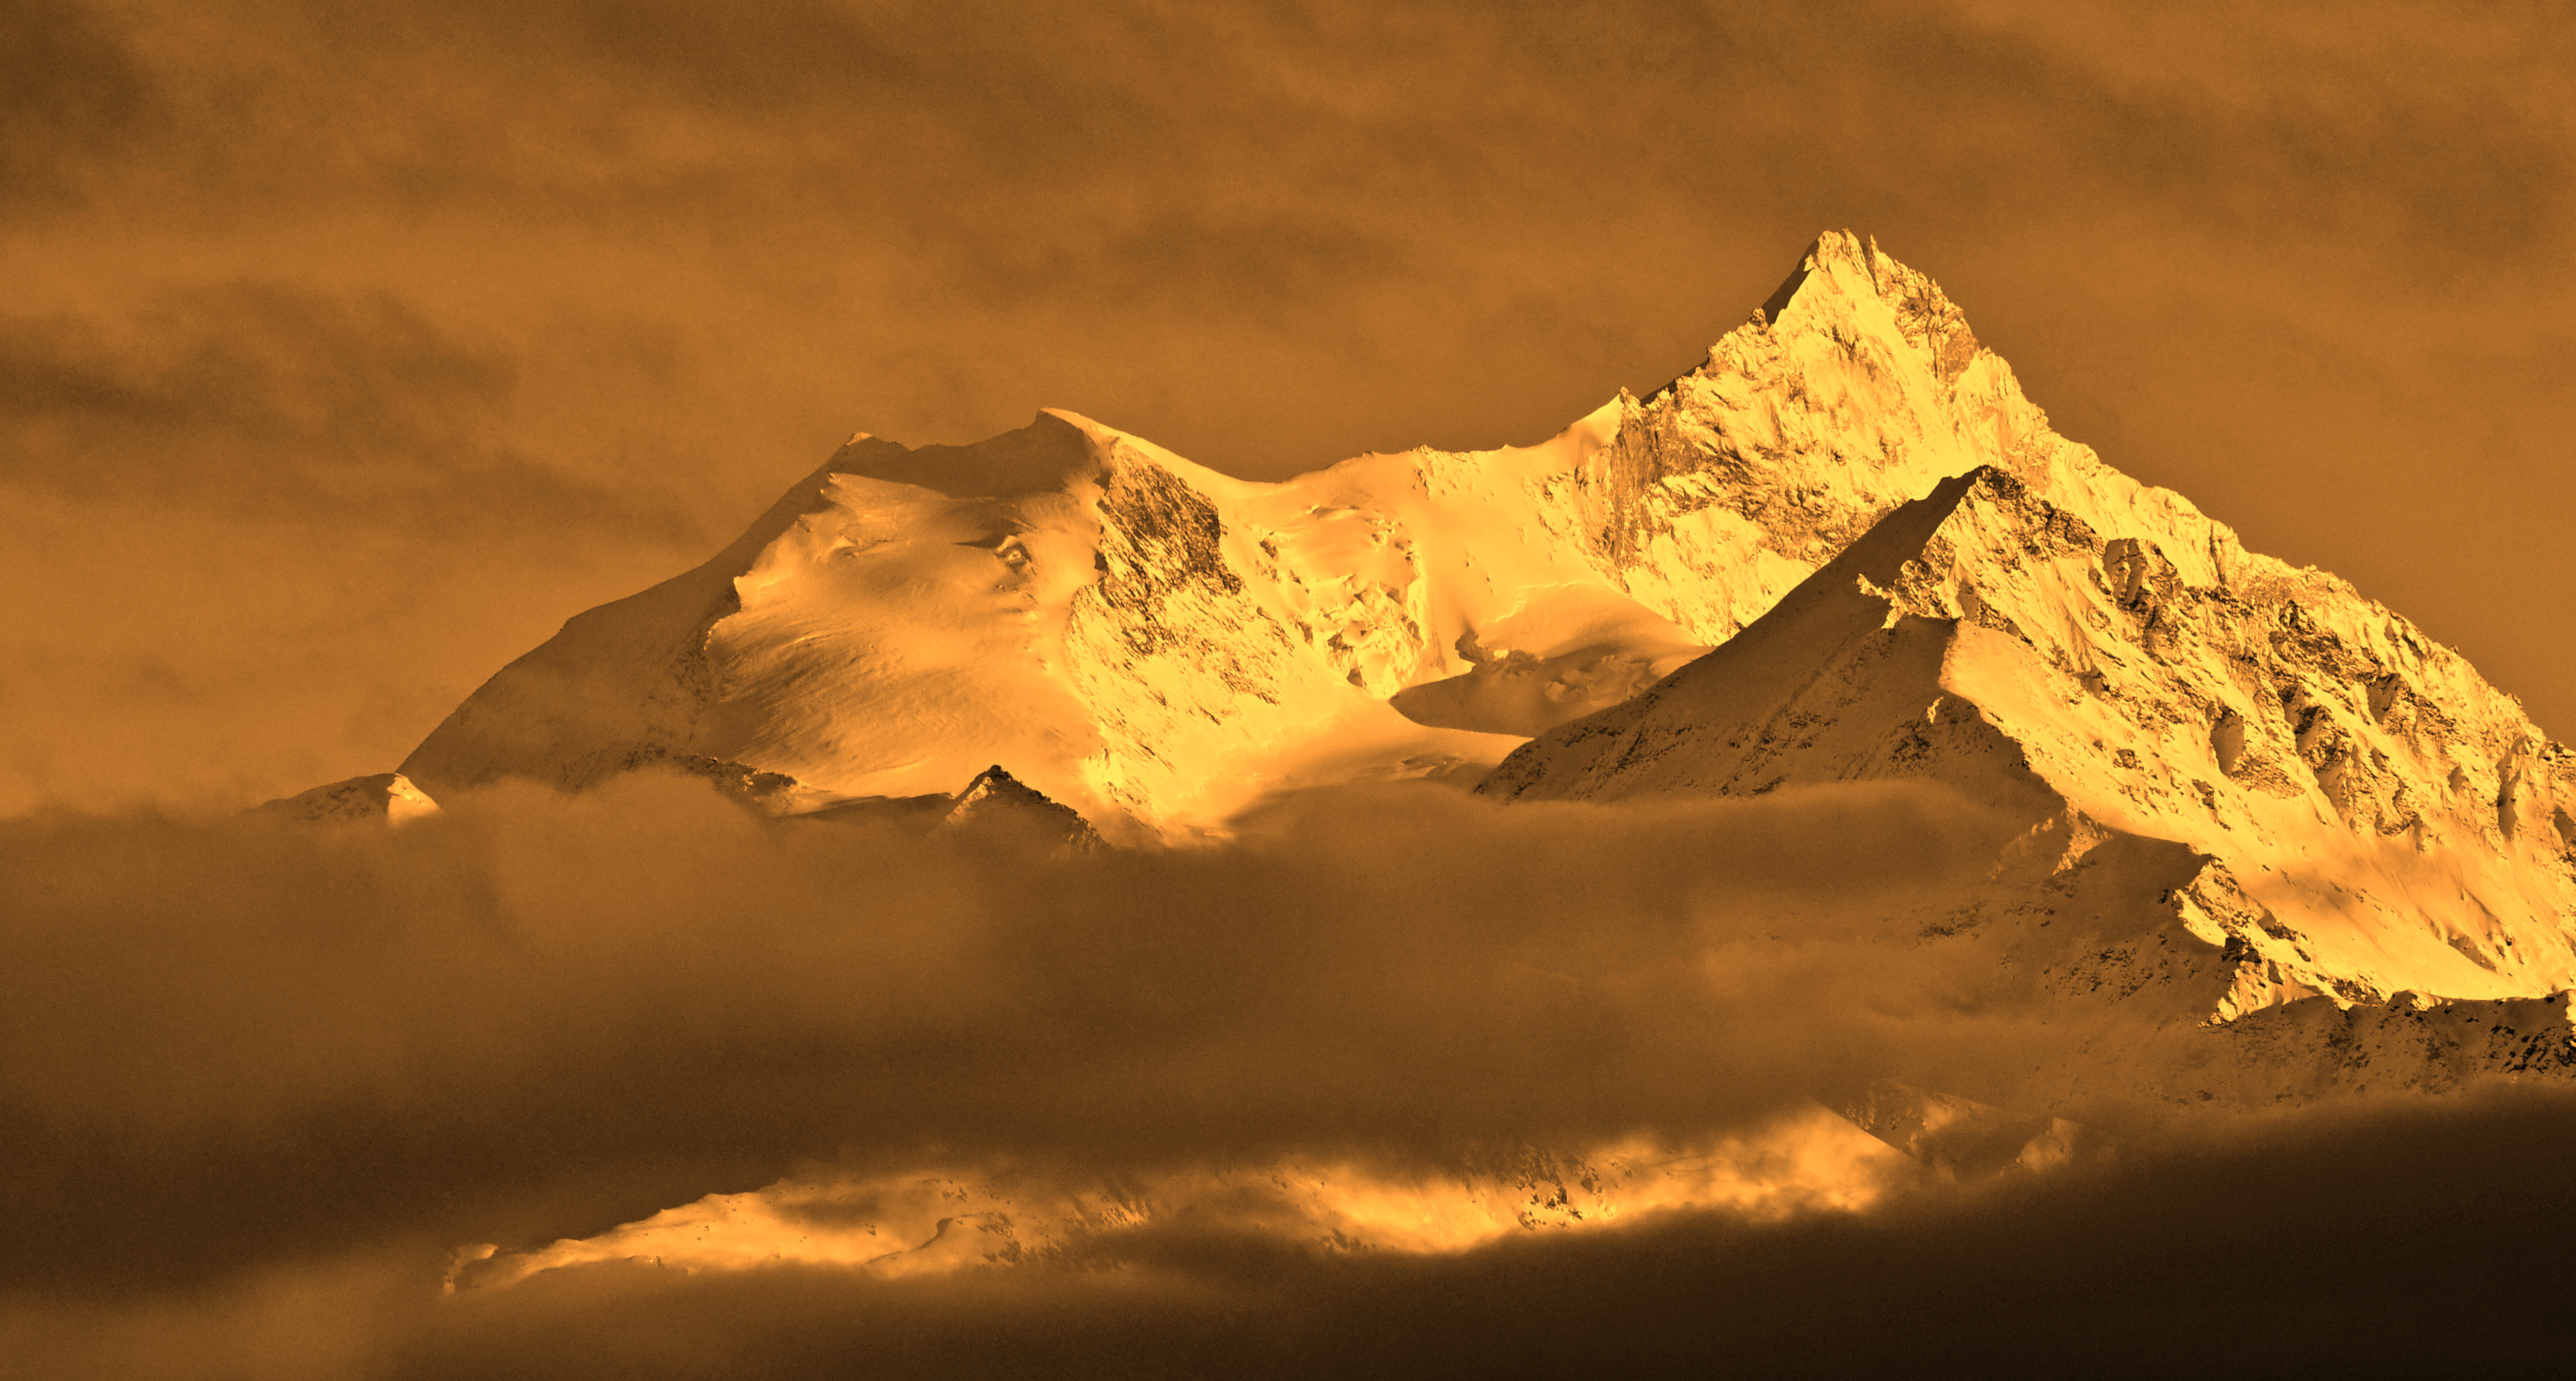 Sunset view from Crans Montana